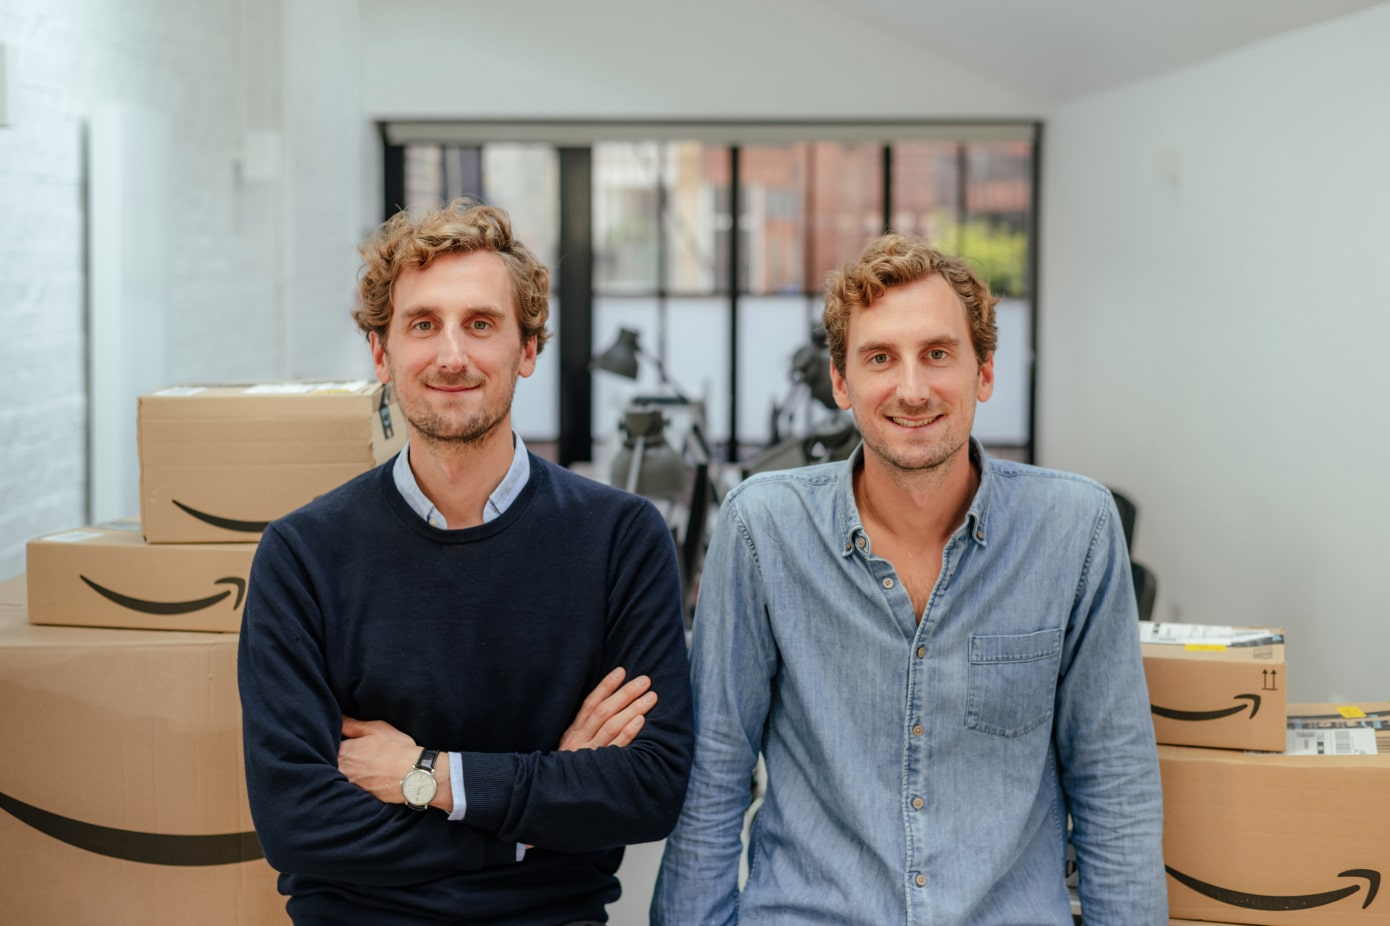 Heroes Technology secures £49 million Seed investment led by Fuel Ventures and 360 Capital Partners